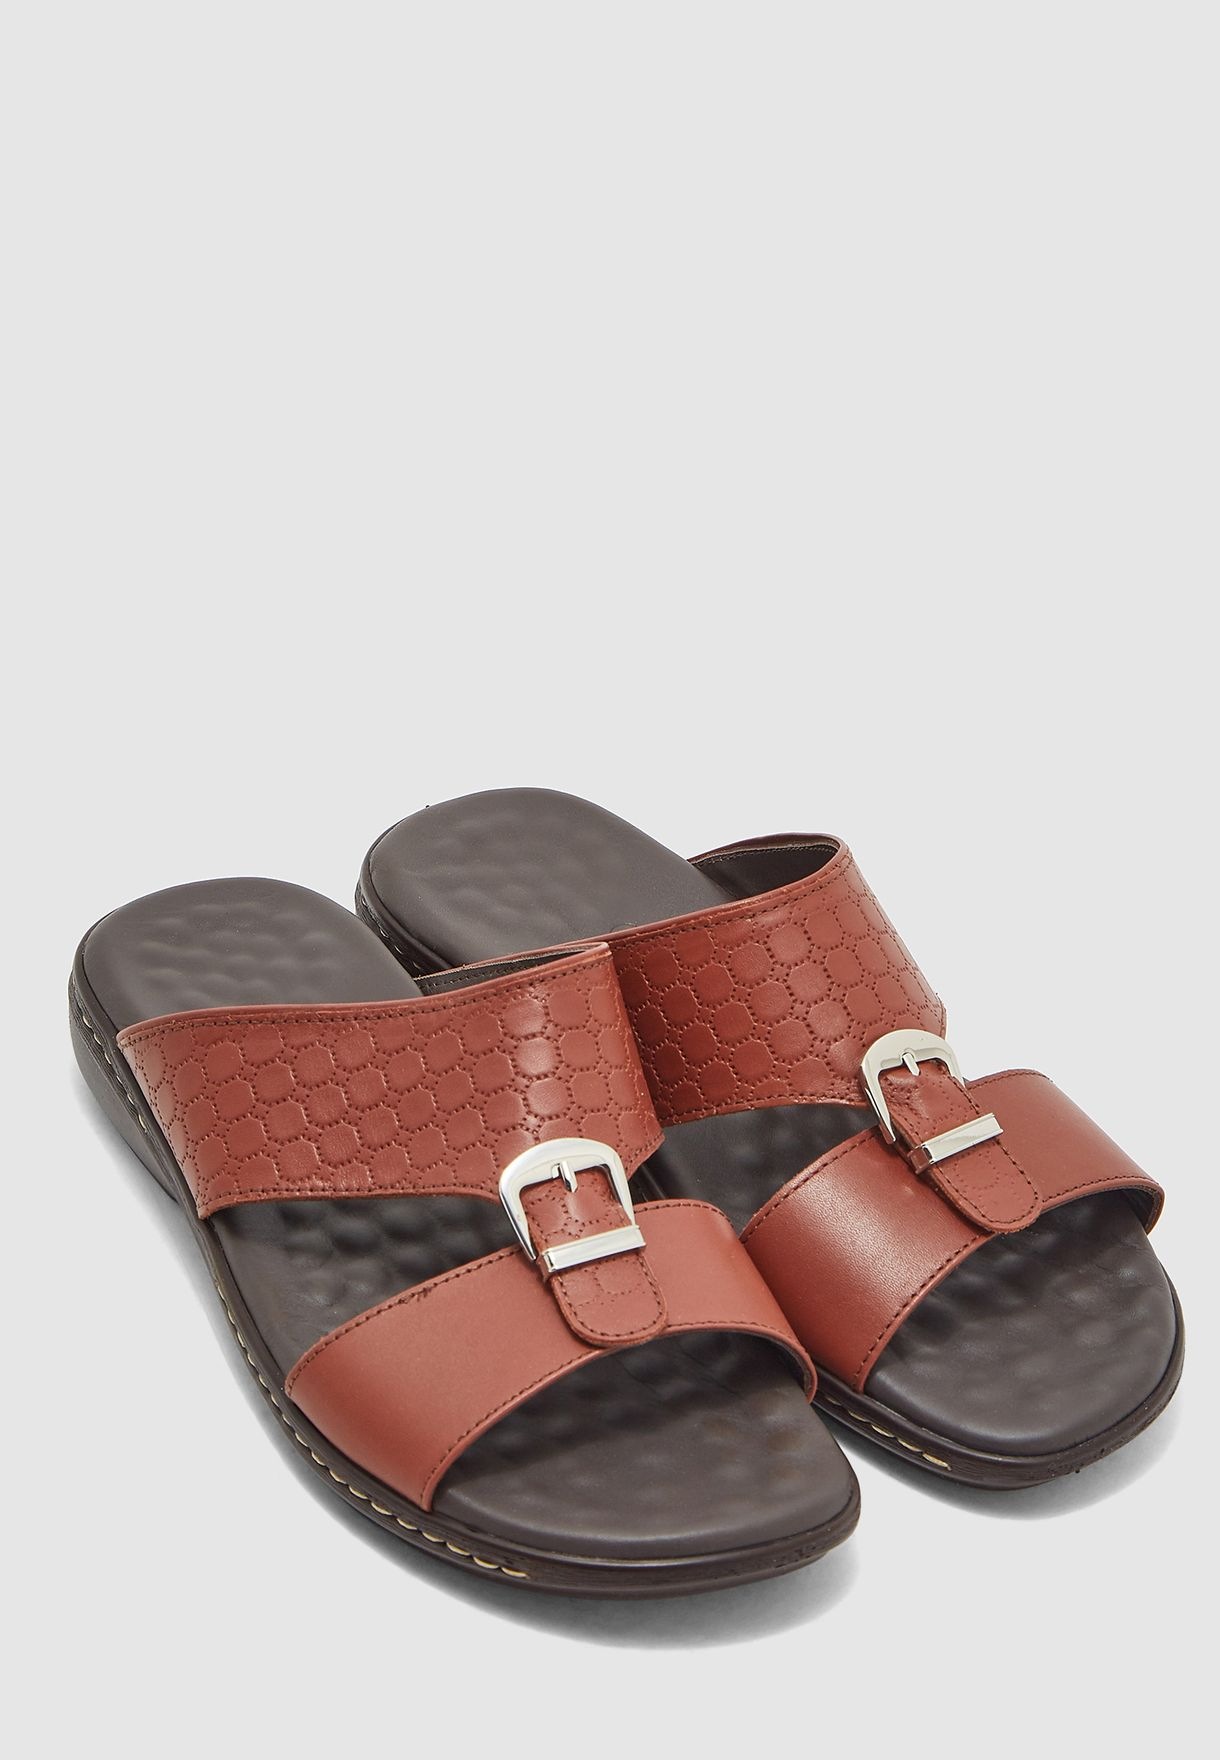 Double Strap Buckled Arabic Sandals